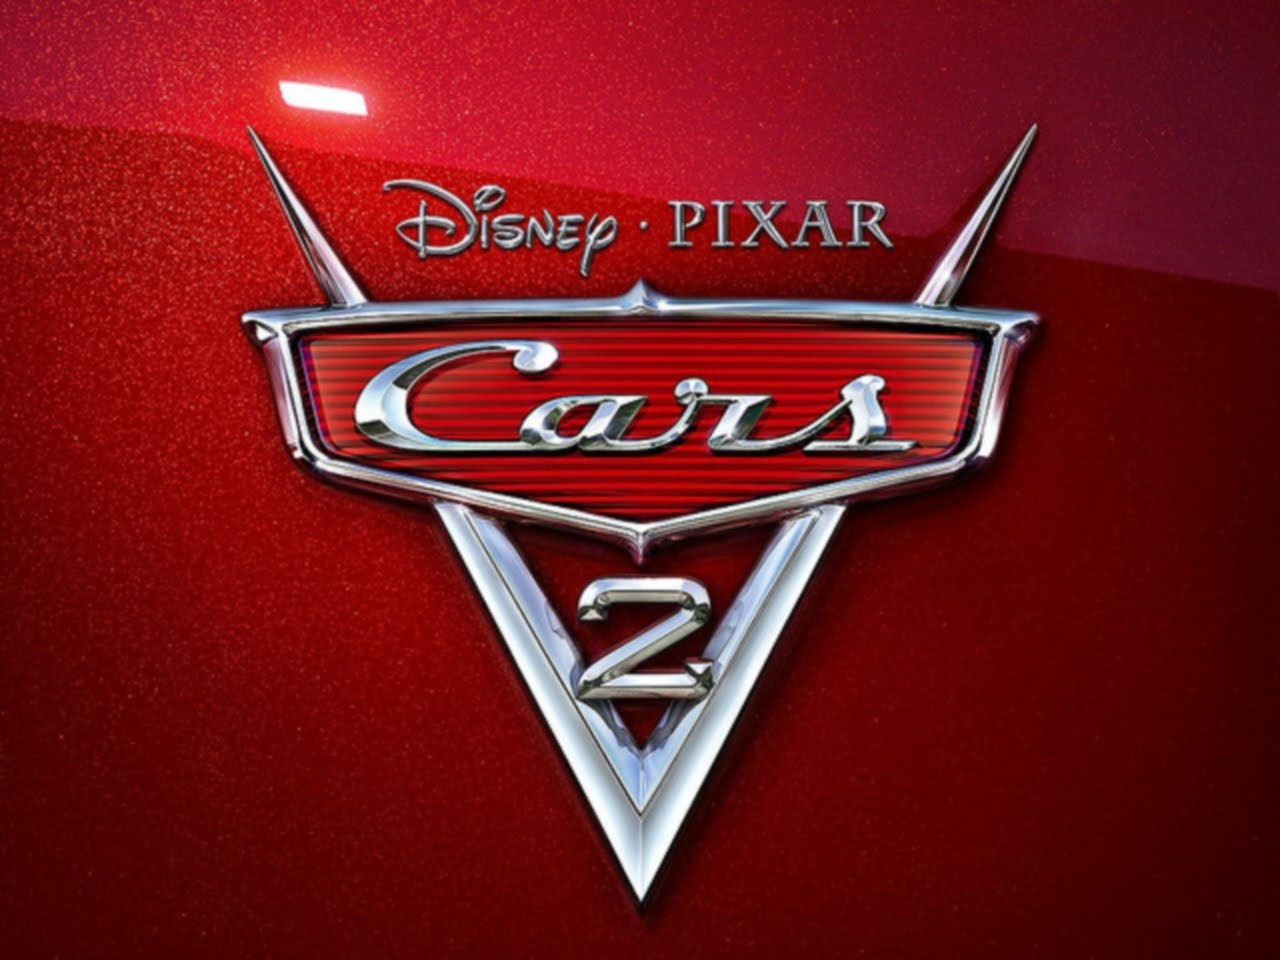 http://savepoint.es/wp-content/uploads/2011/03/logo-cars2.jpg